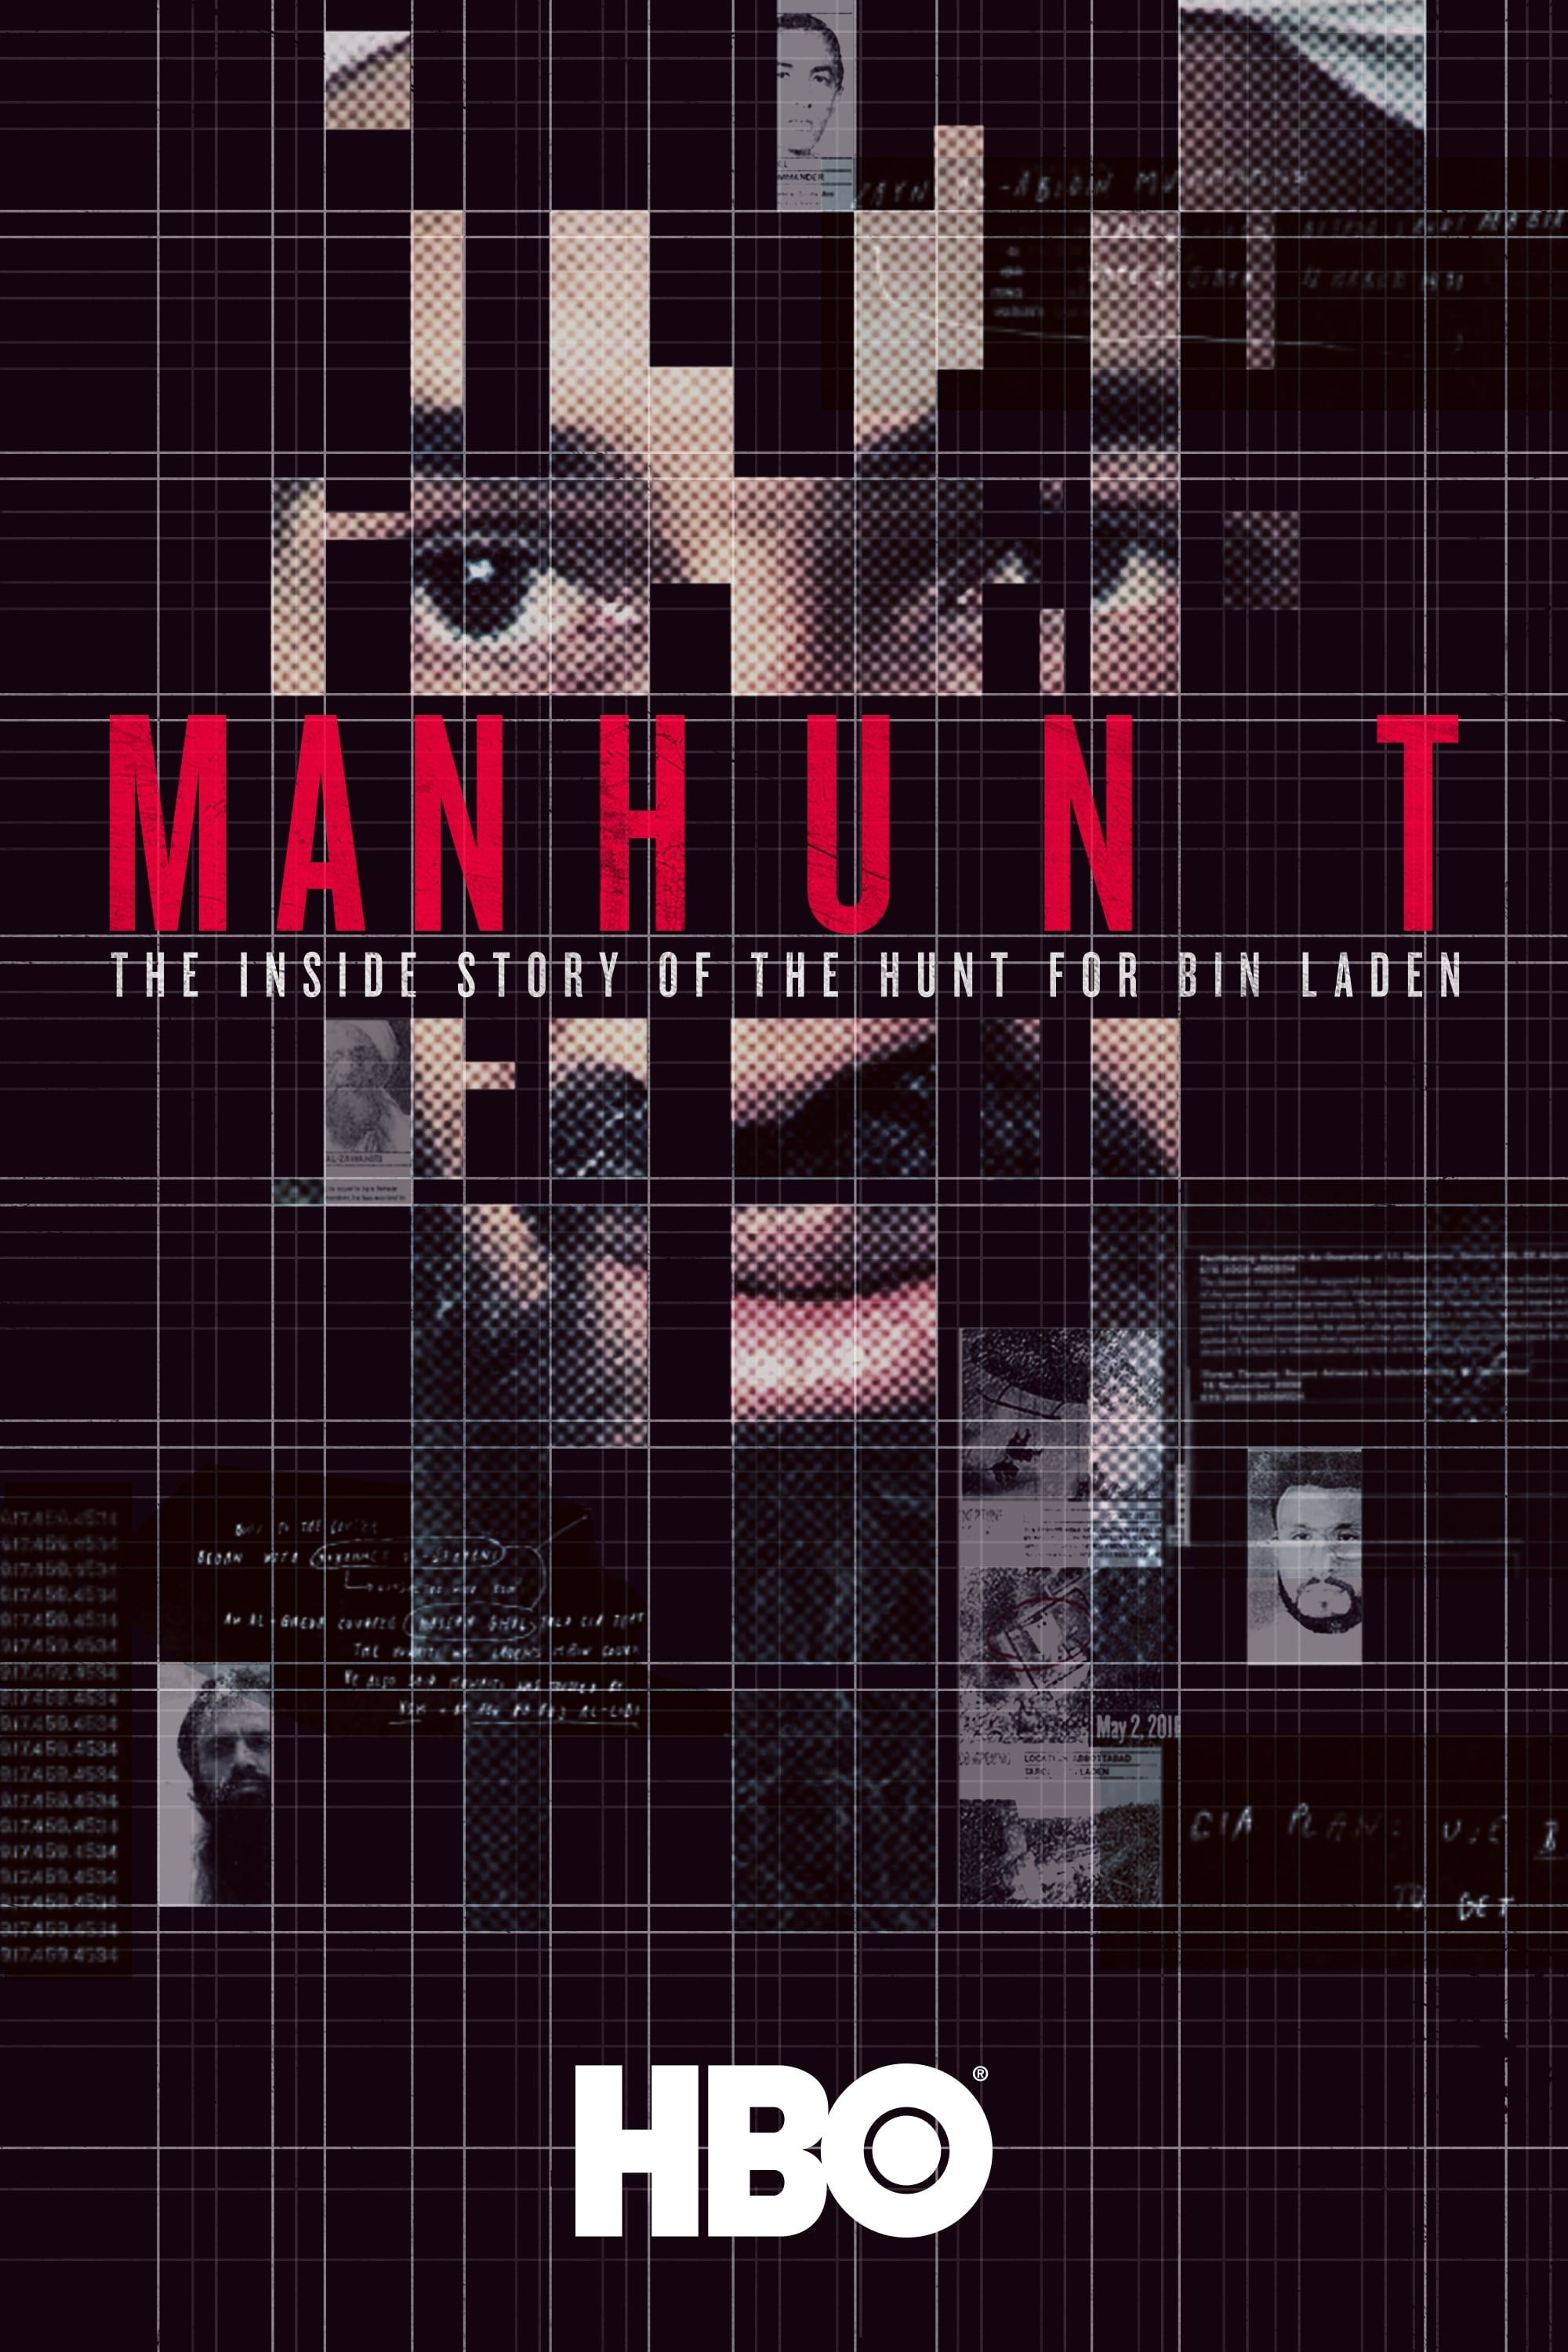 Manhunt: The Inside Story of the Hunt for Bin Laden (2013)